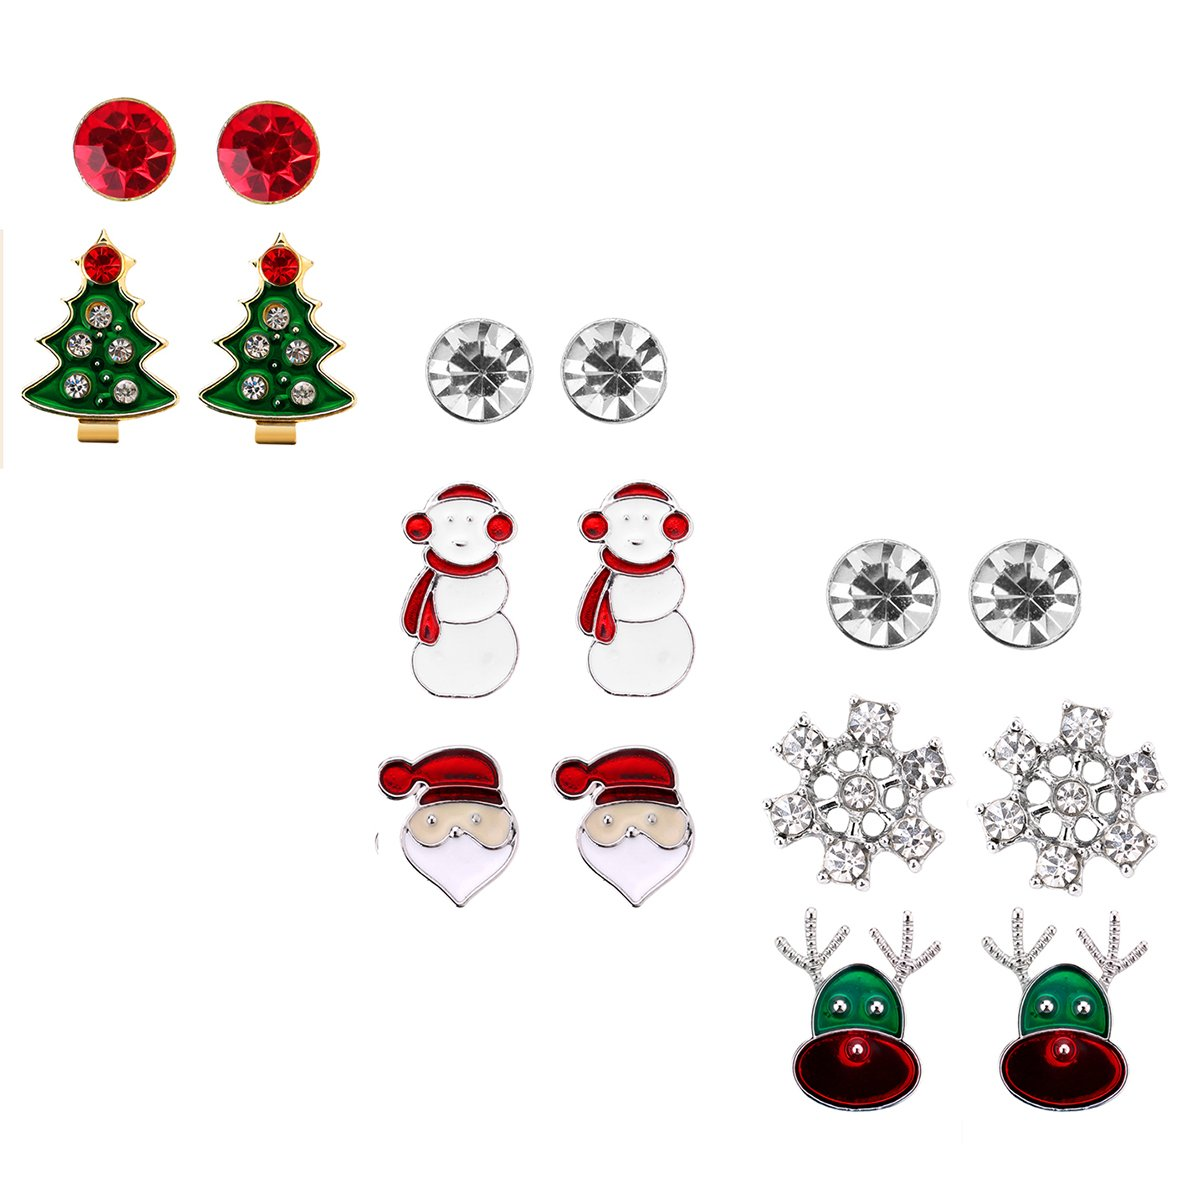 Snowmen Christmas Stud Earring Set Gift Pack of 8 Pairs Hypoallergenic Christmas Gift Jewelry for Women Girls Kids Teens Christmas Santa Claus Deer Green Christmas Tree Holiday Earrings